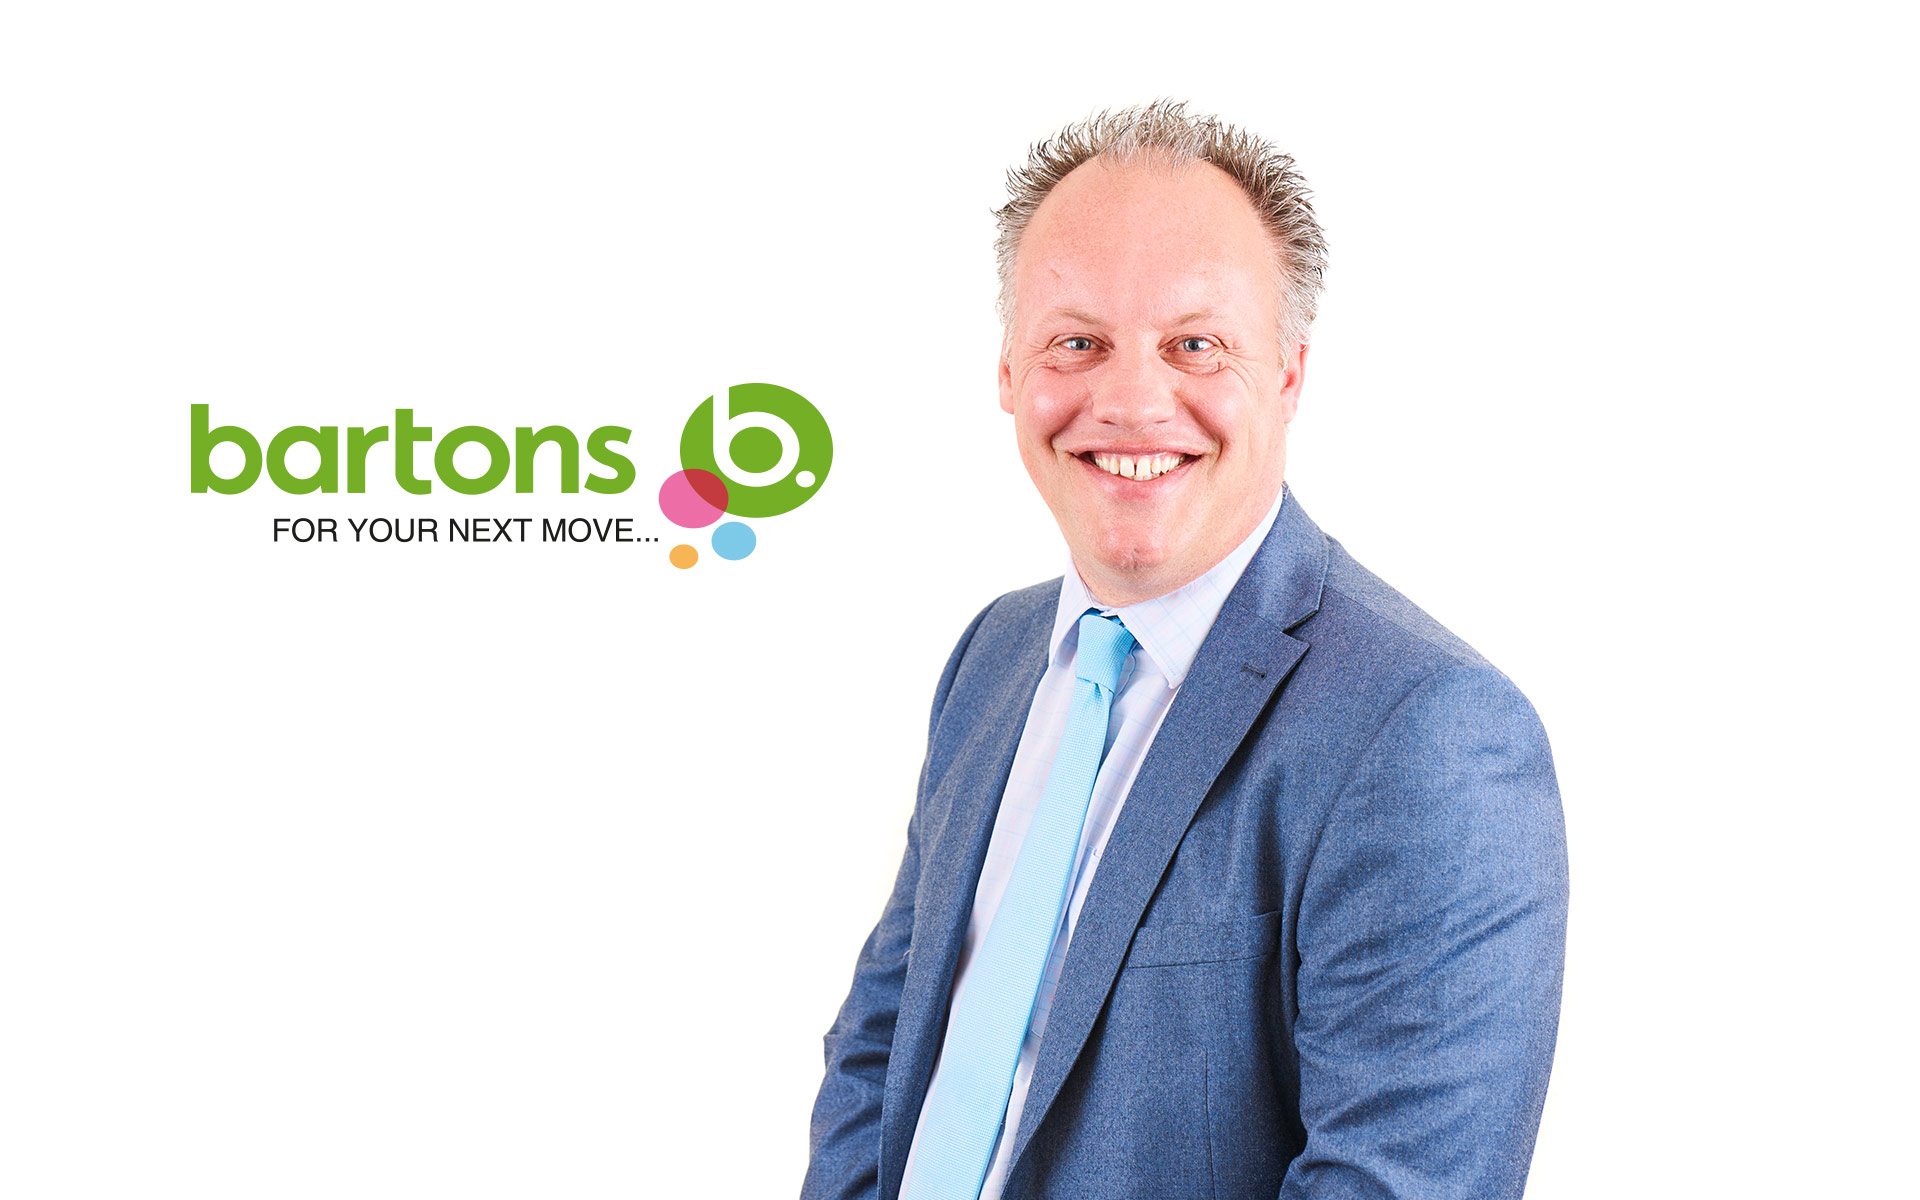 Bartons-IDEA-Rotherham-Photographer-Dave